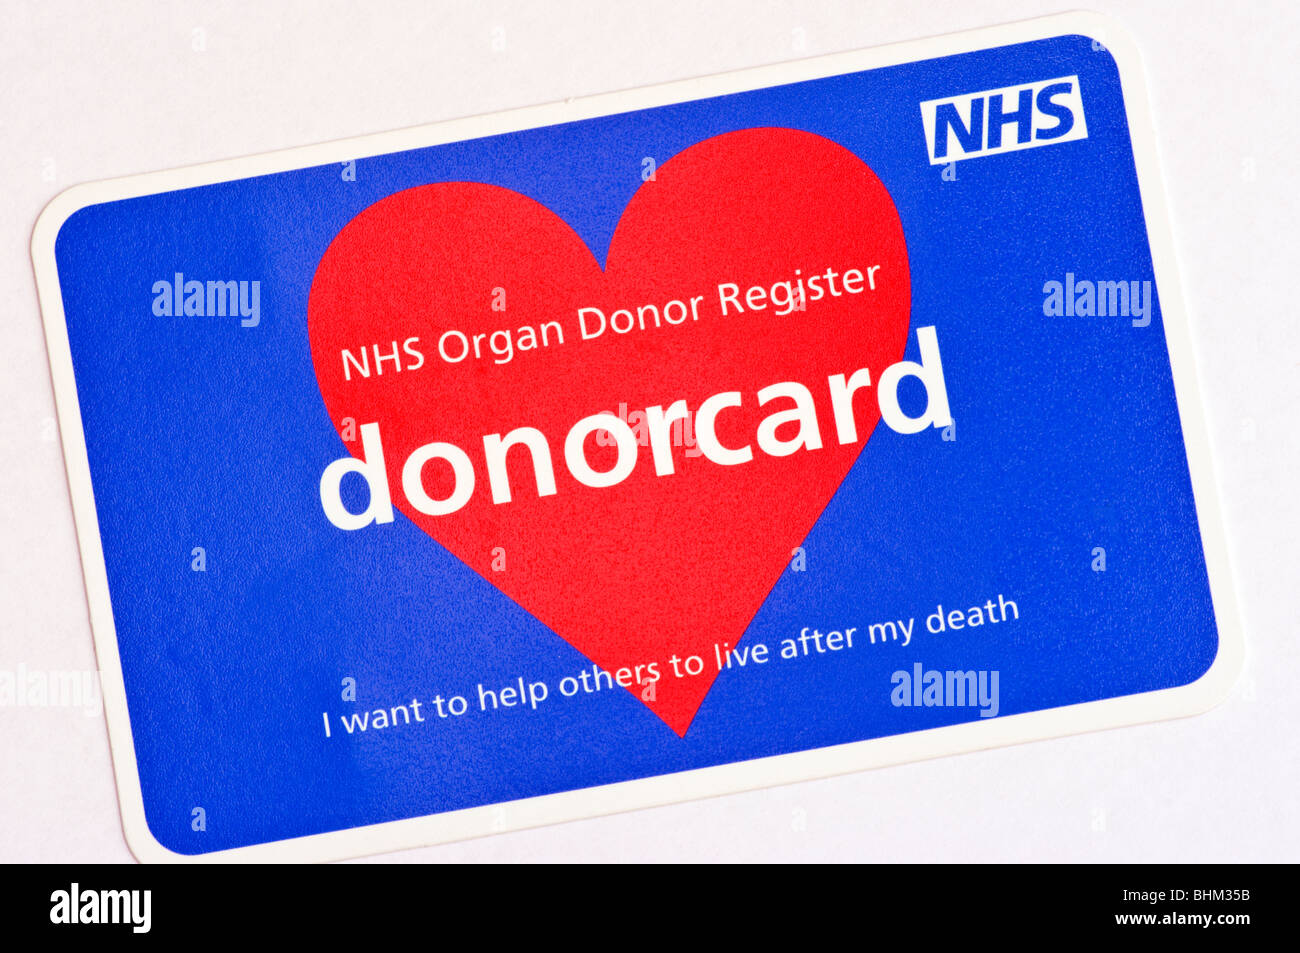 NHS Organ Donor Register Donorcard - Stock Image